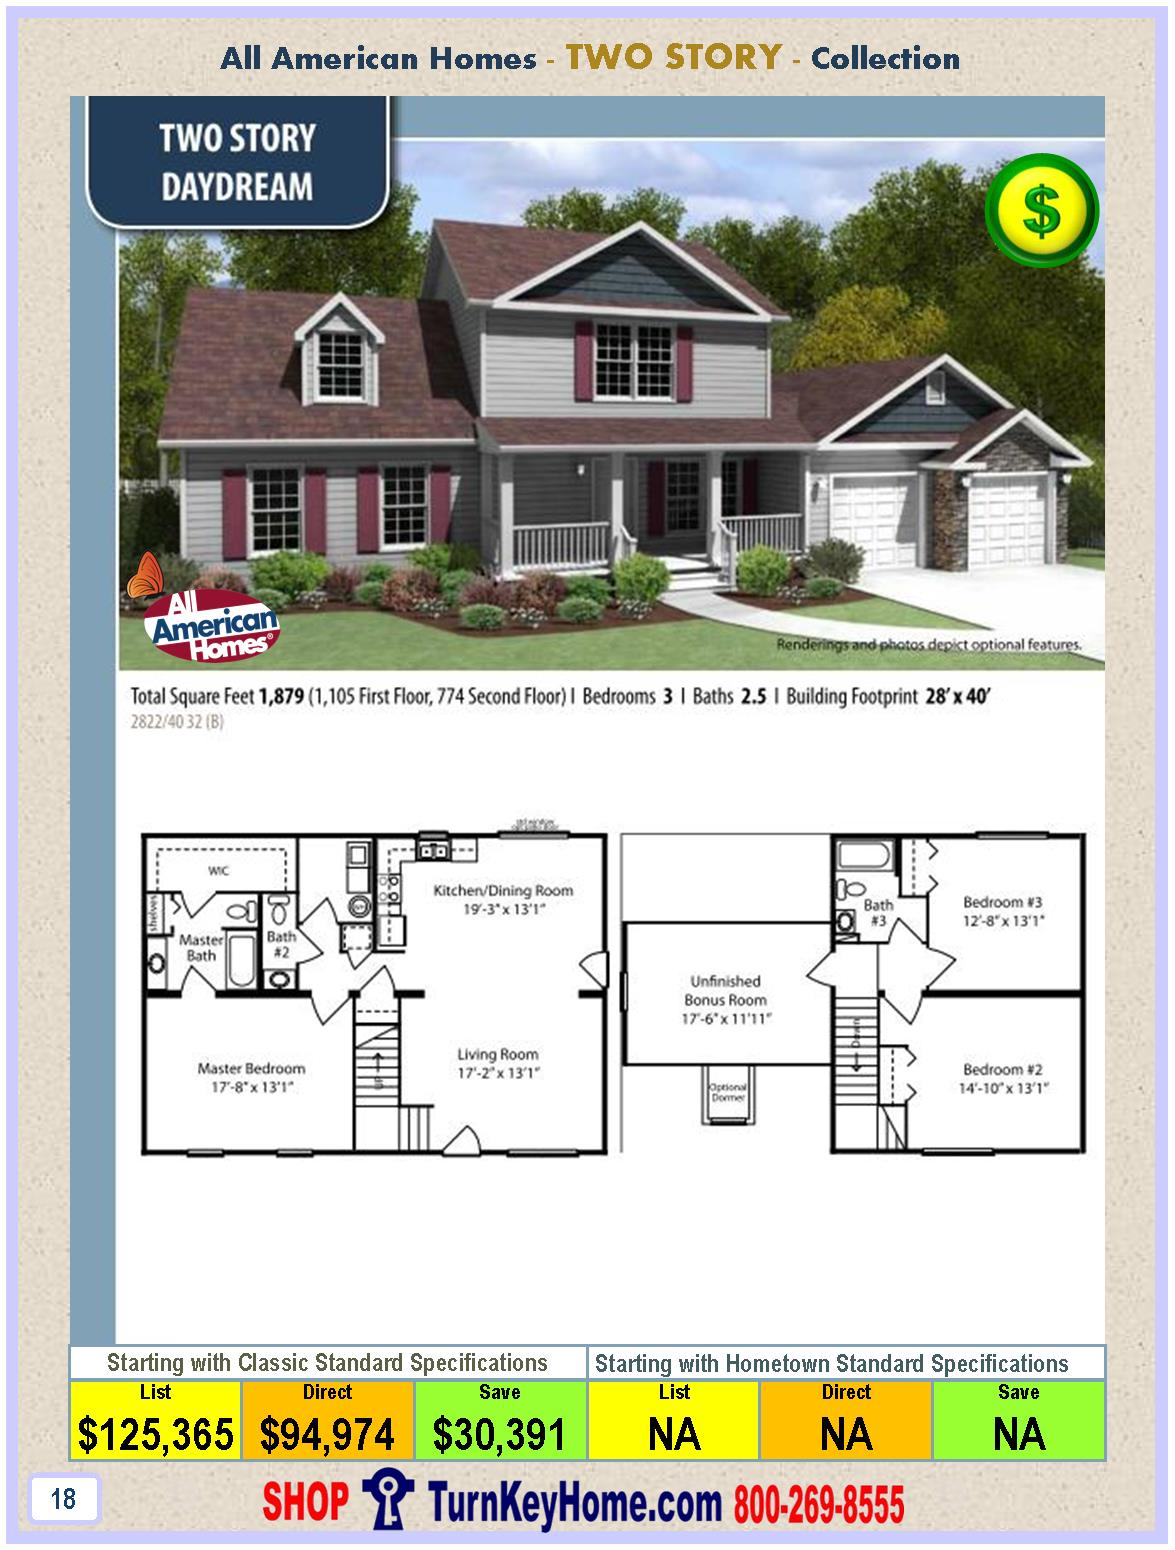 Daydream all american modular home two story collection for All american homes floor plans